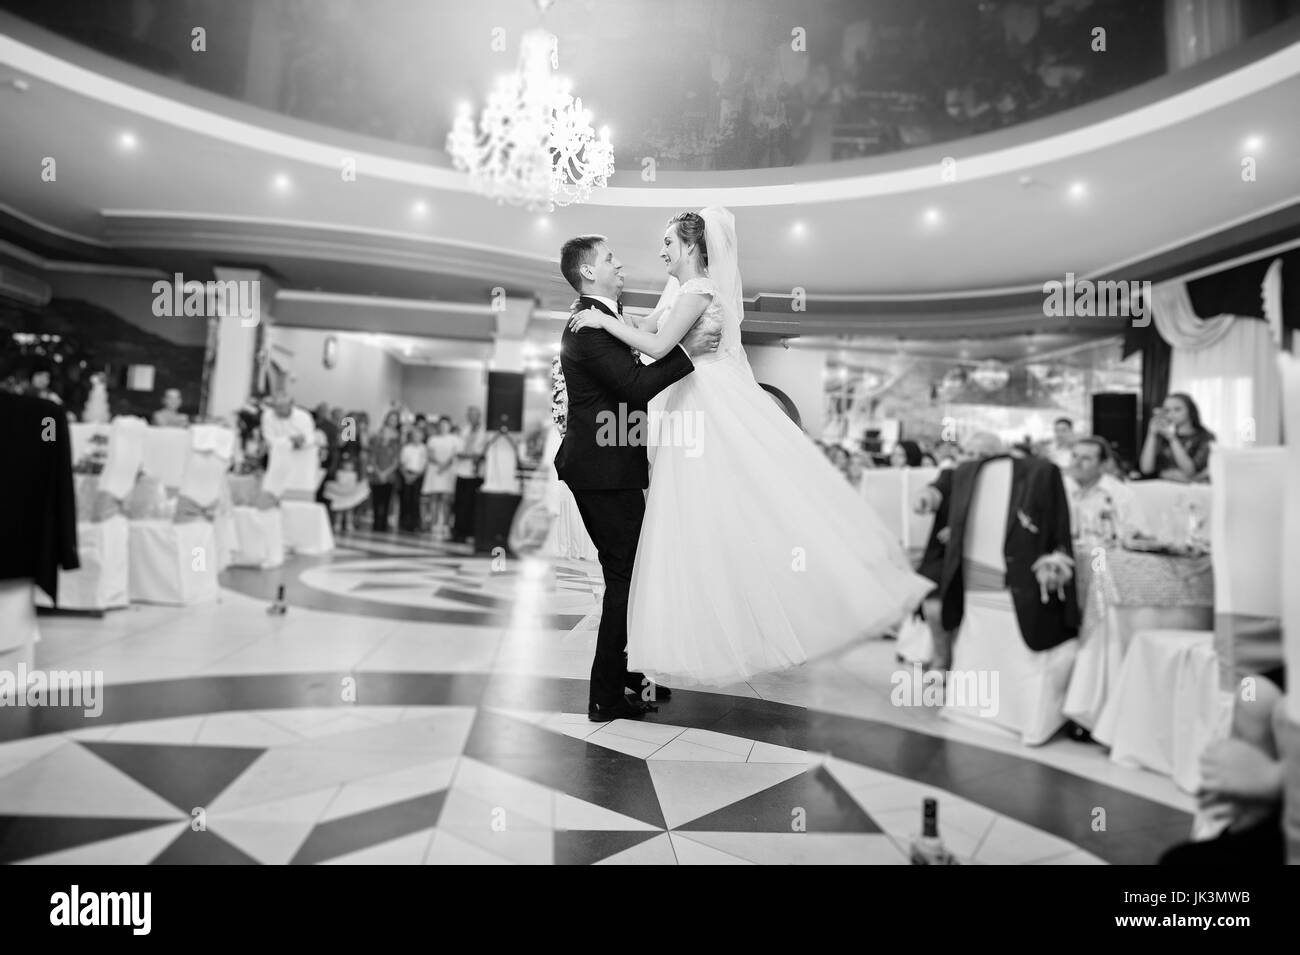 The First Dance Of Newly Married Couple At Their Wedding Party In Restaurant Black And White Photo